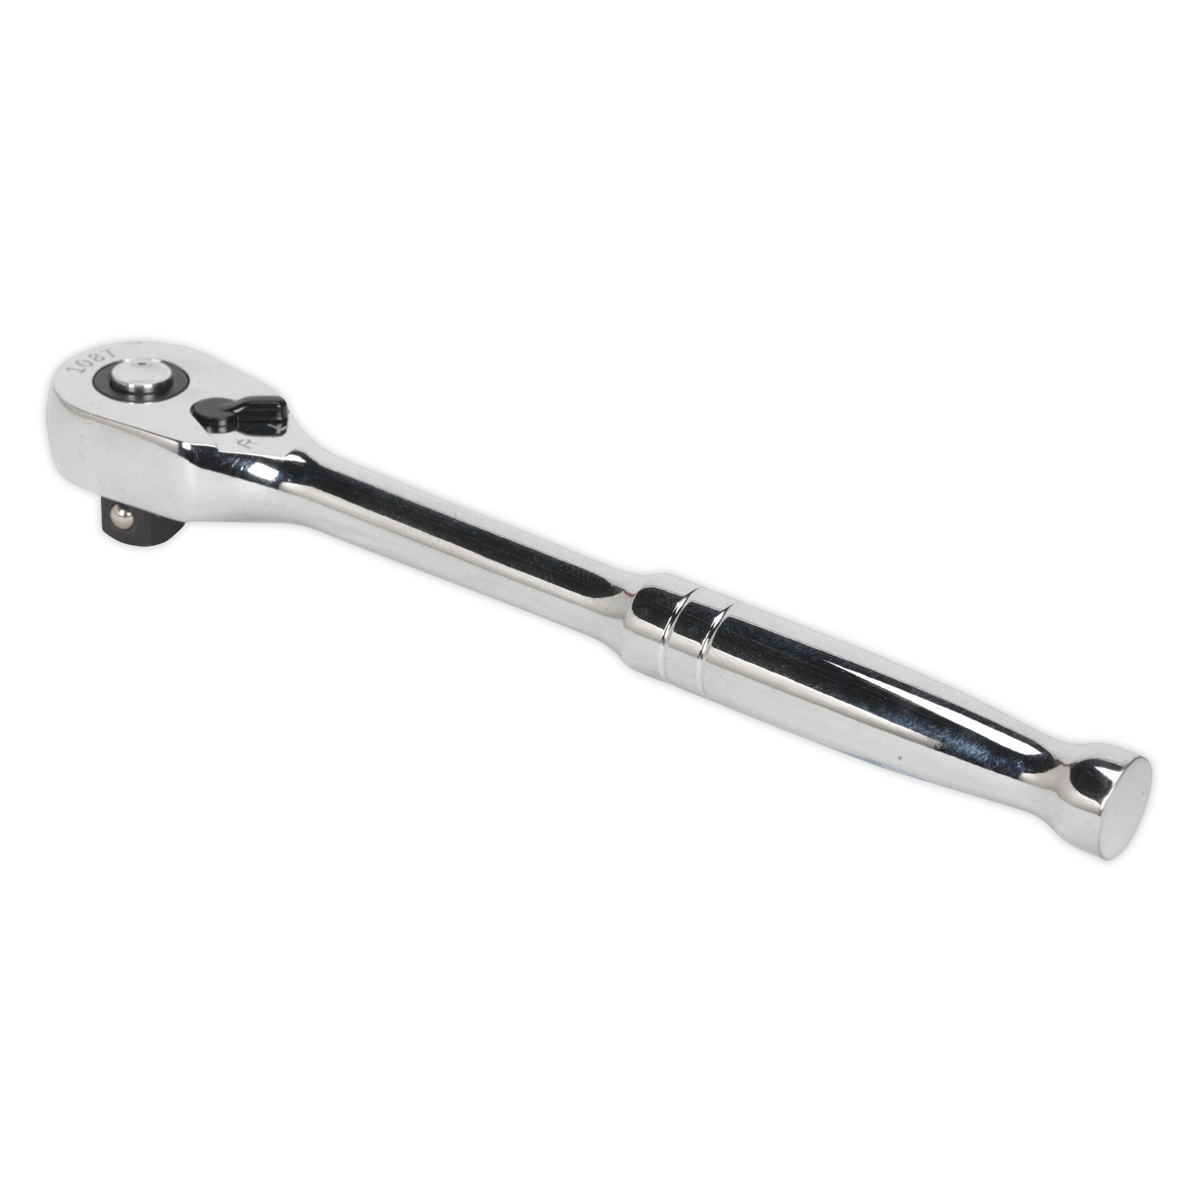 "AK6968 Sealey Ratchet Spanner Reversible 1//4/""Hex x 10mm Hex  Multi-Drive"